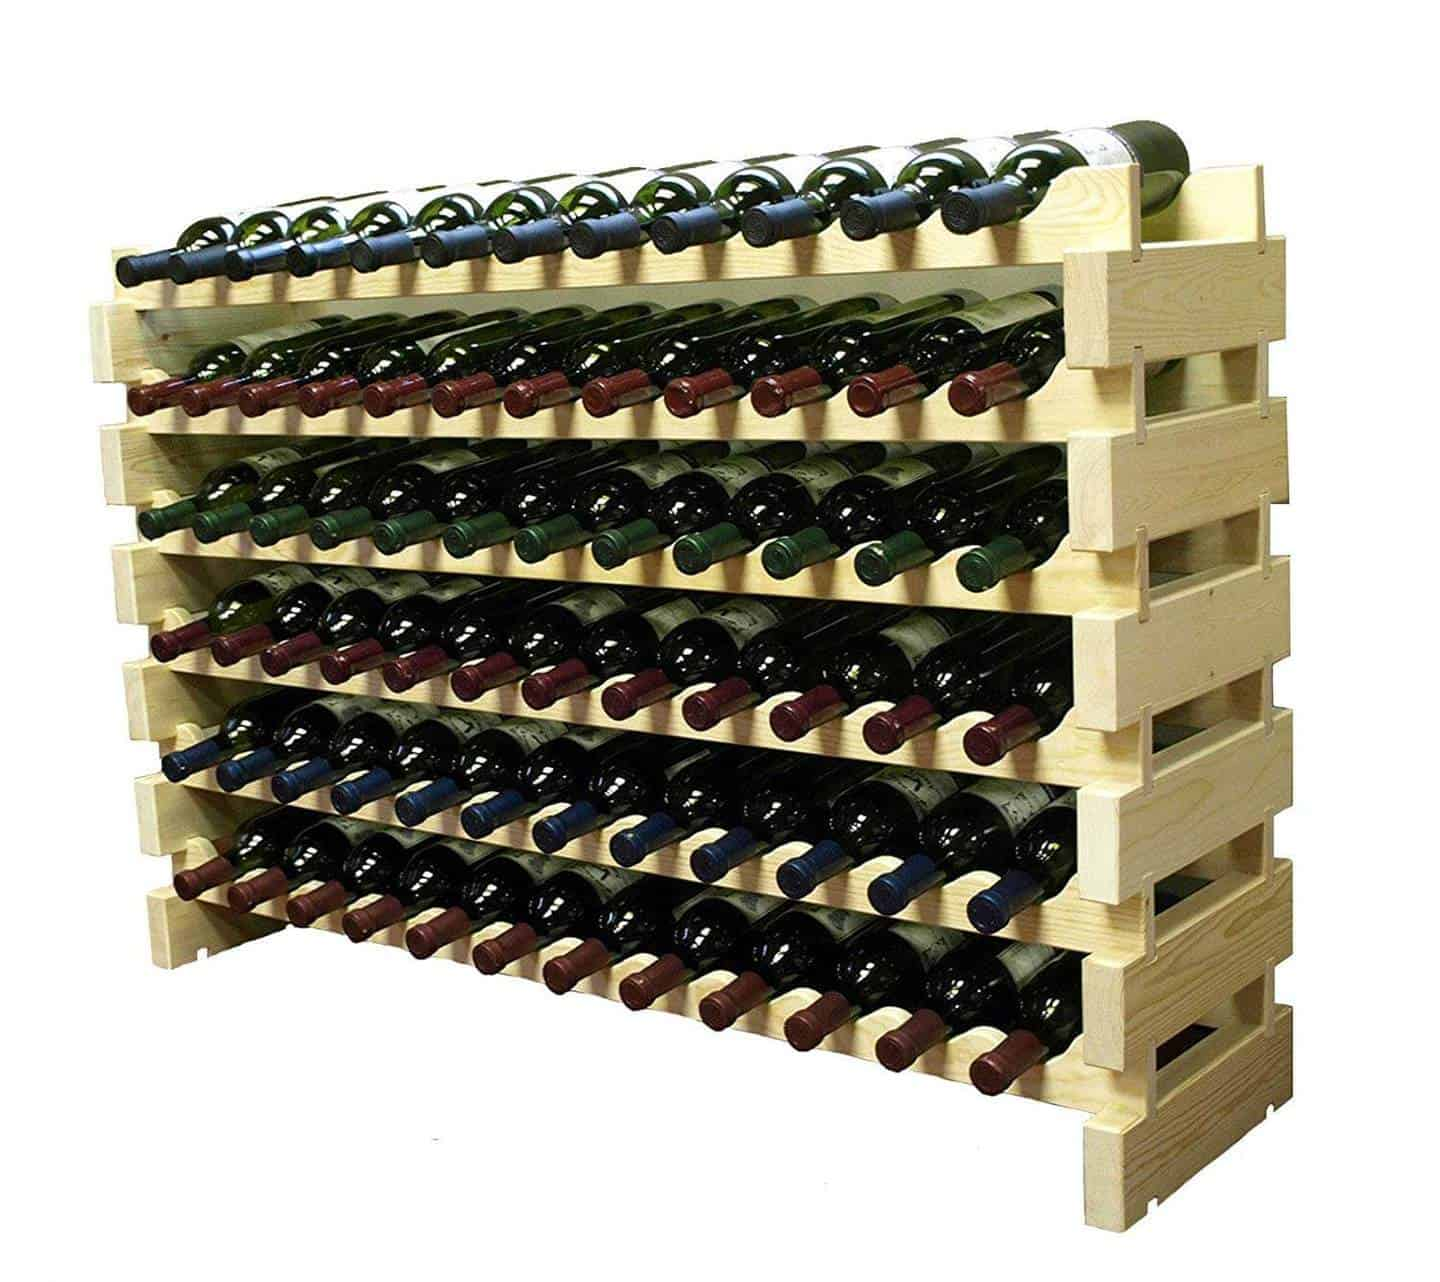 Wooden Bottle Rack Wooden Wine Racks Your Best Options California Winery Advisor